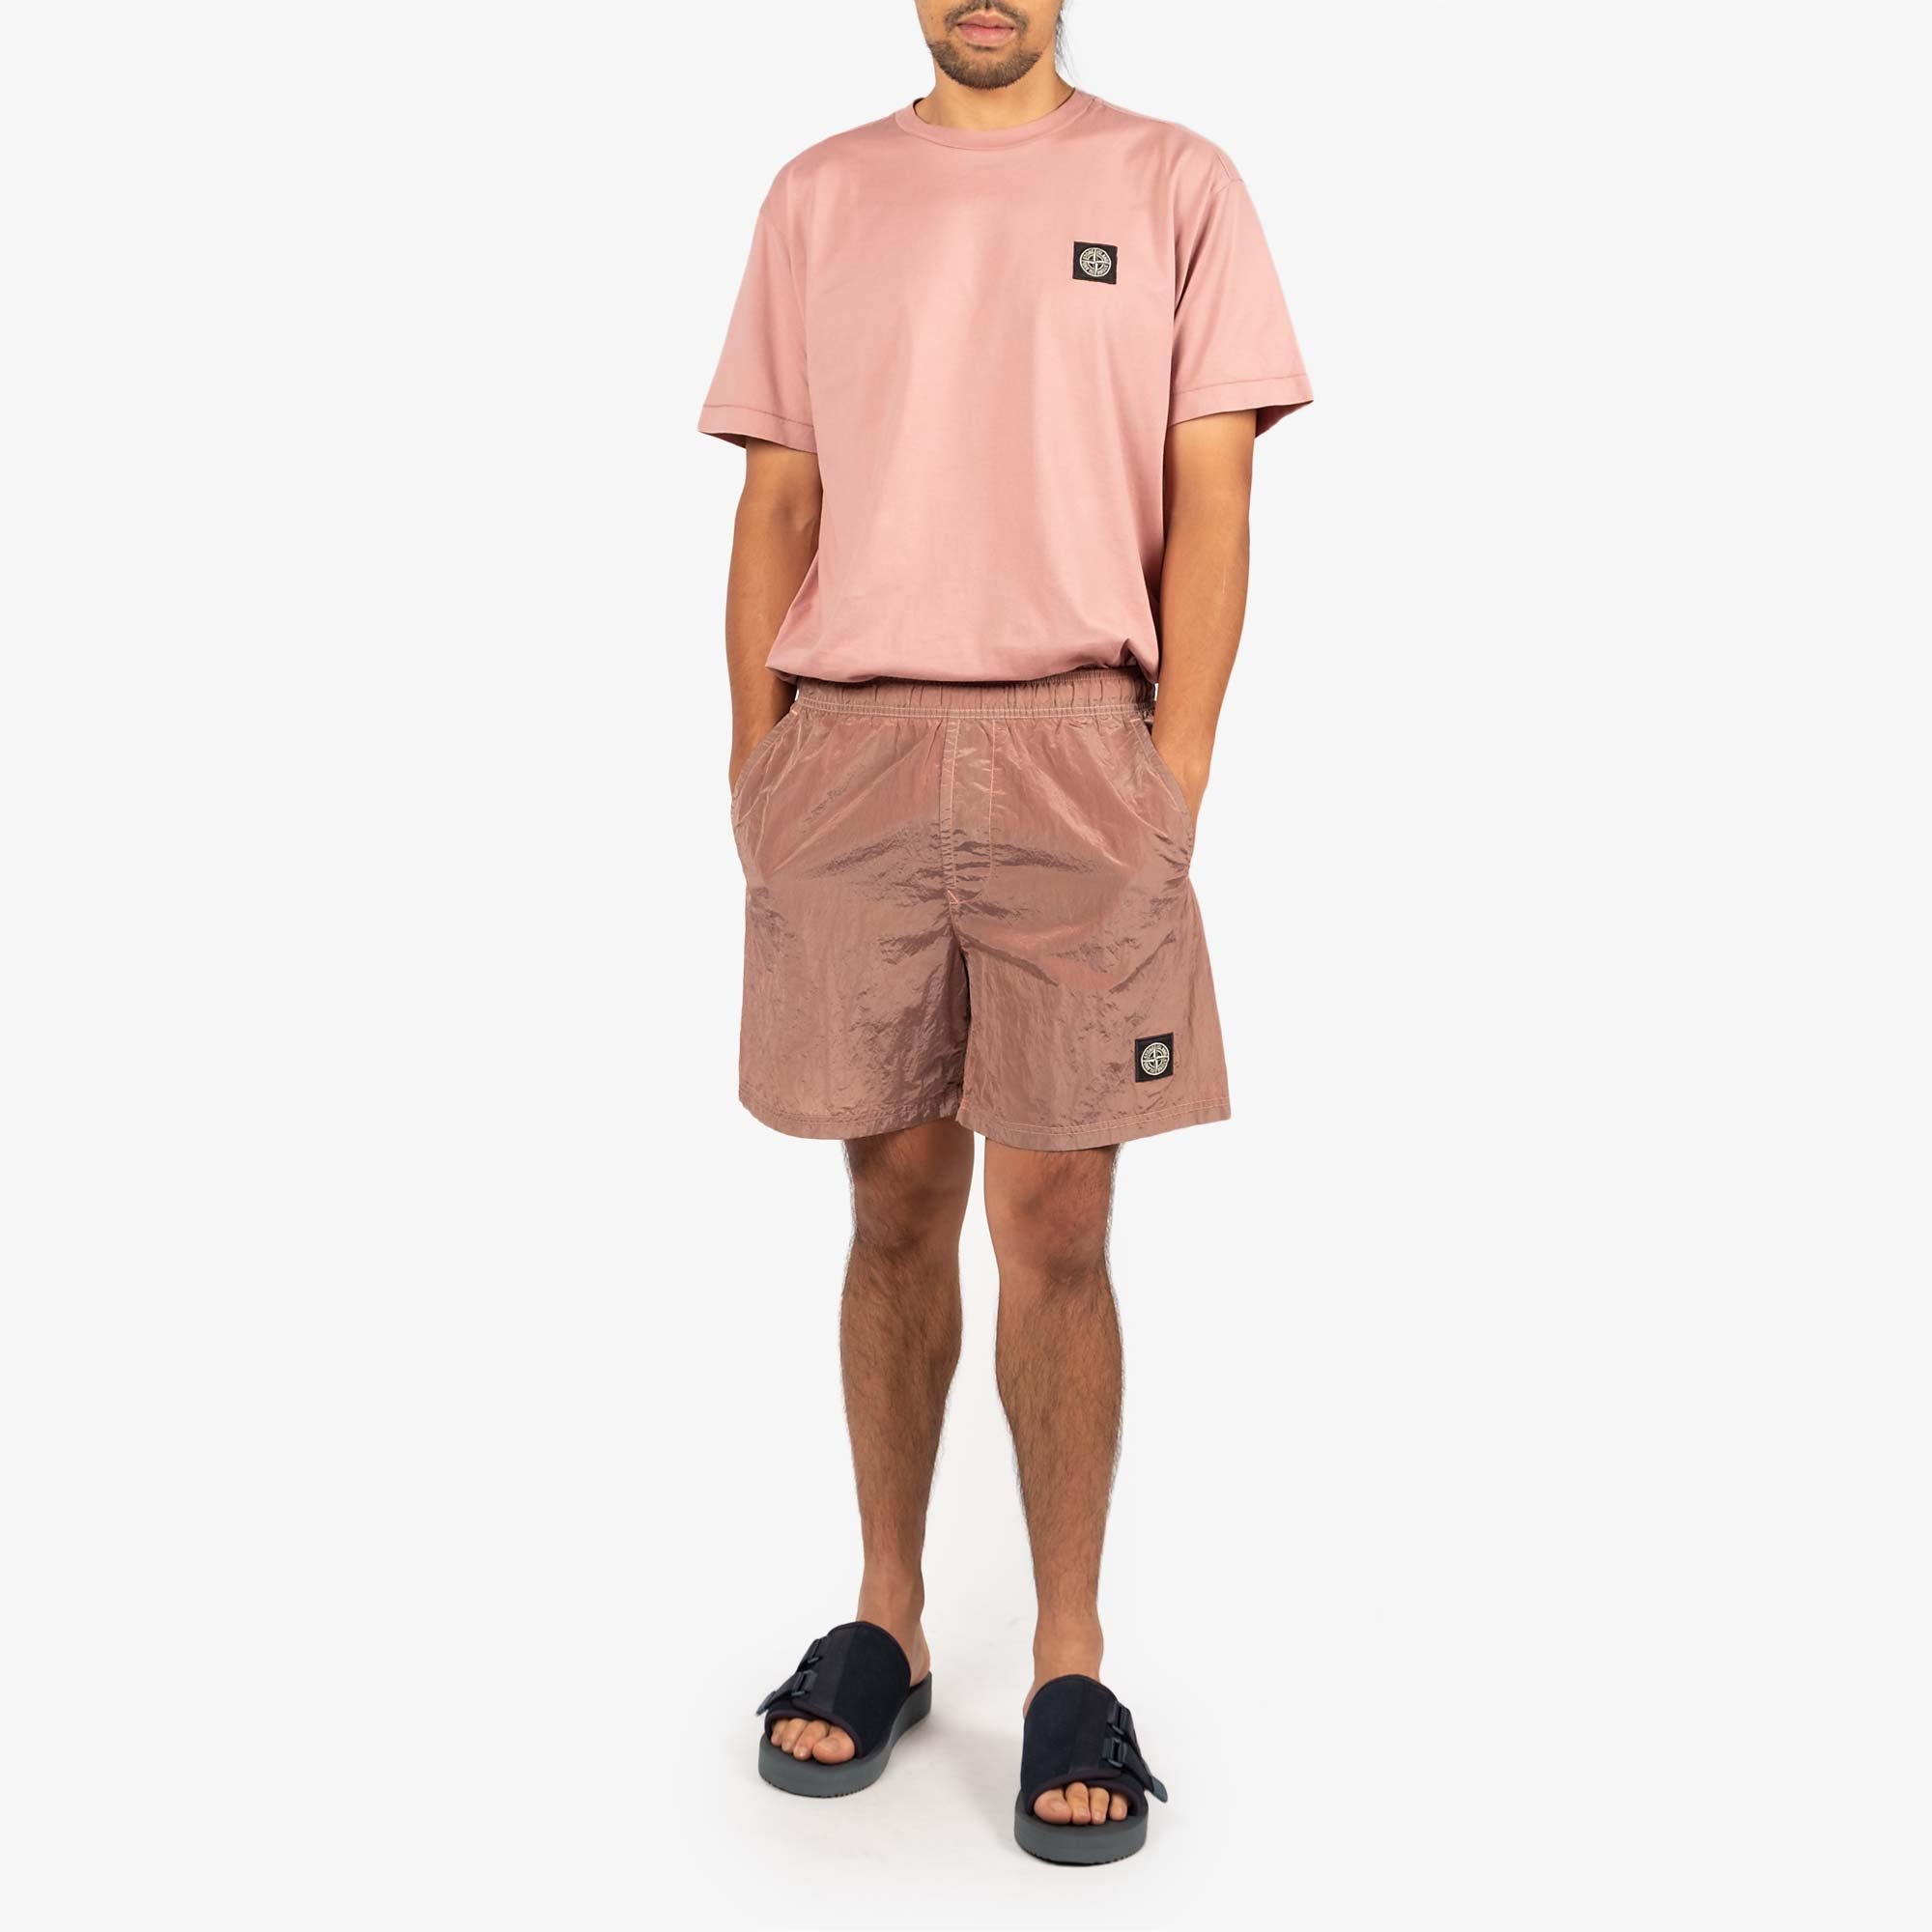 Stone Island Nylon Metal Swim Shorts 7415B0943 Shorts - Rose Quartz 8